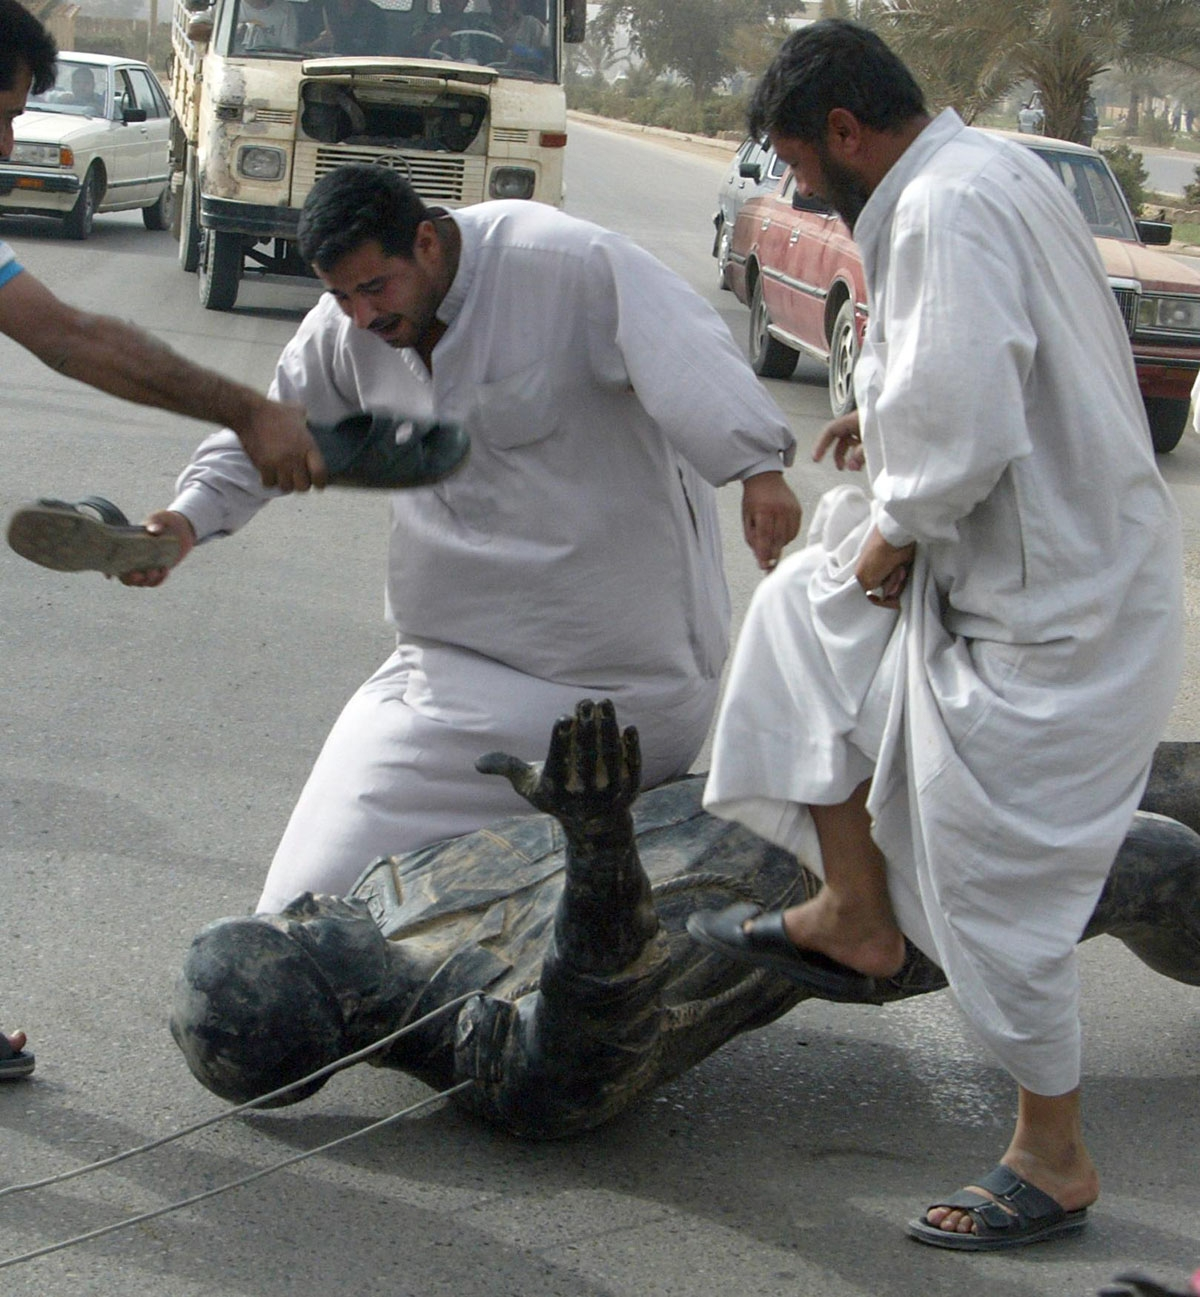 Iraqis hit and trample a statue of President Saddam Hussein in Baghdad 09 April 2003 after US tanks rolled into the heart of the Iraqi capital.